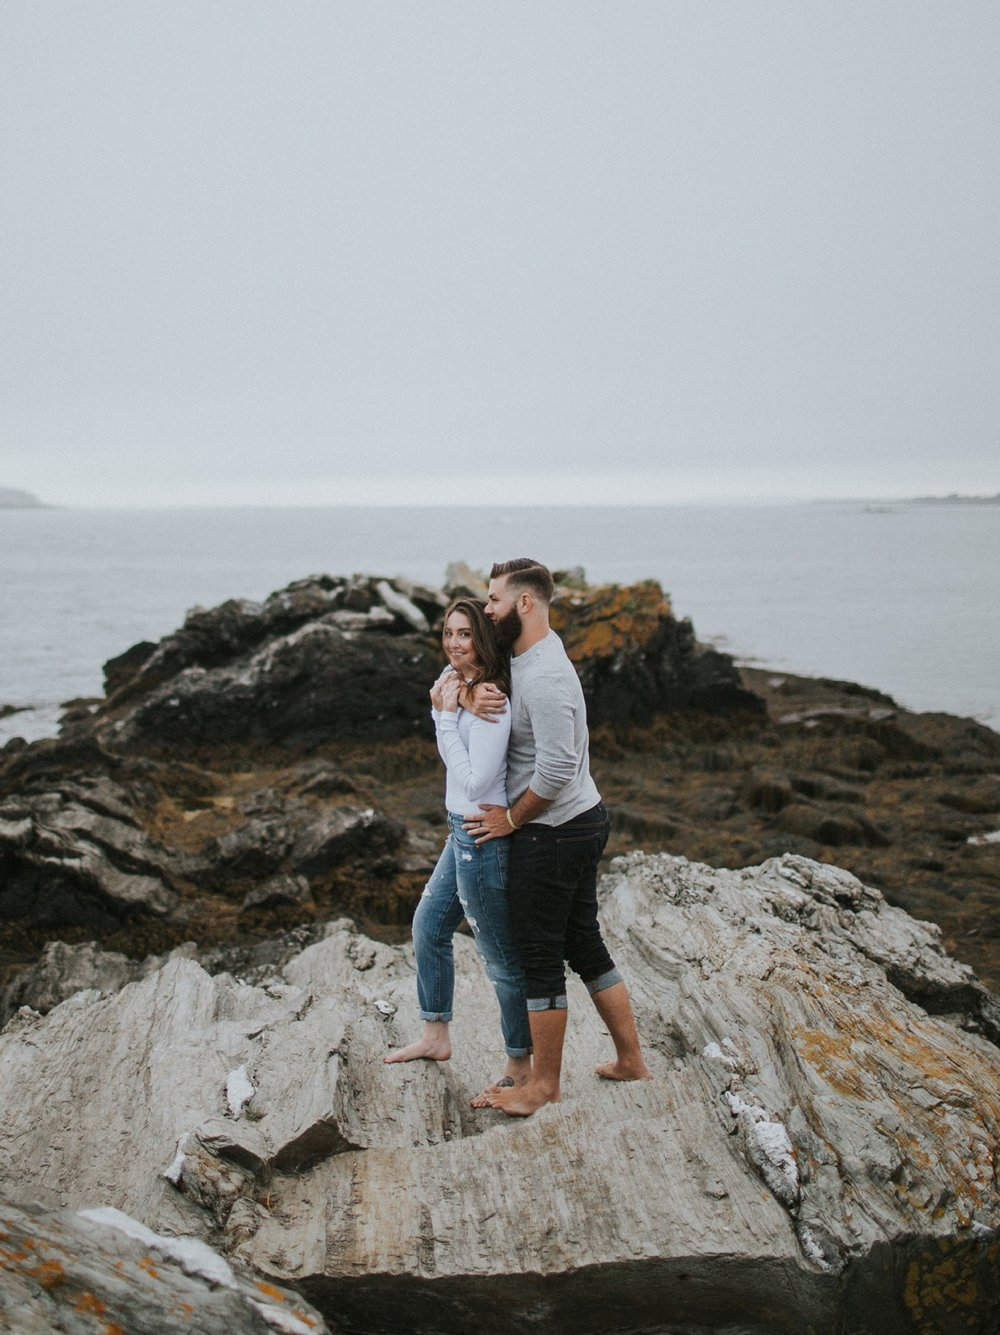 kettle cove maine engagement photoskettle cove maine engagement photos